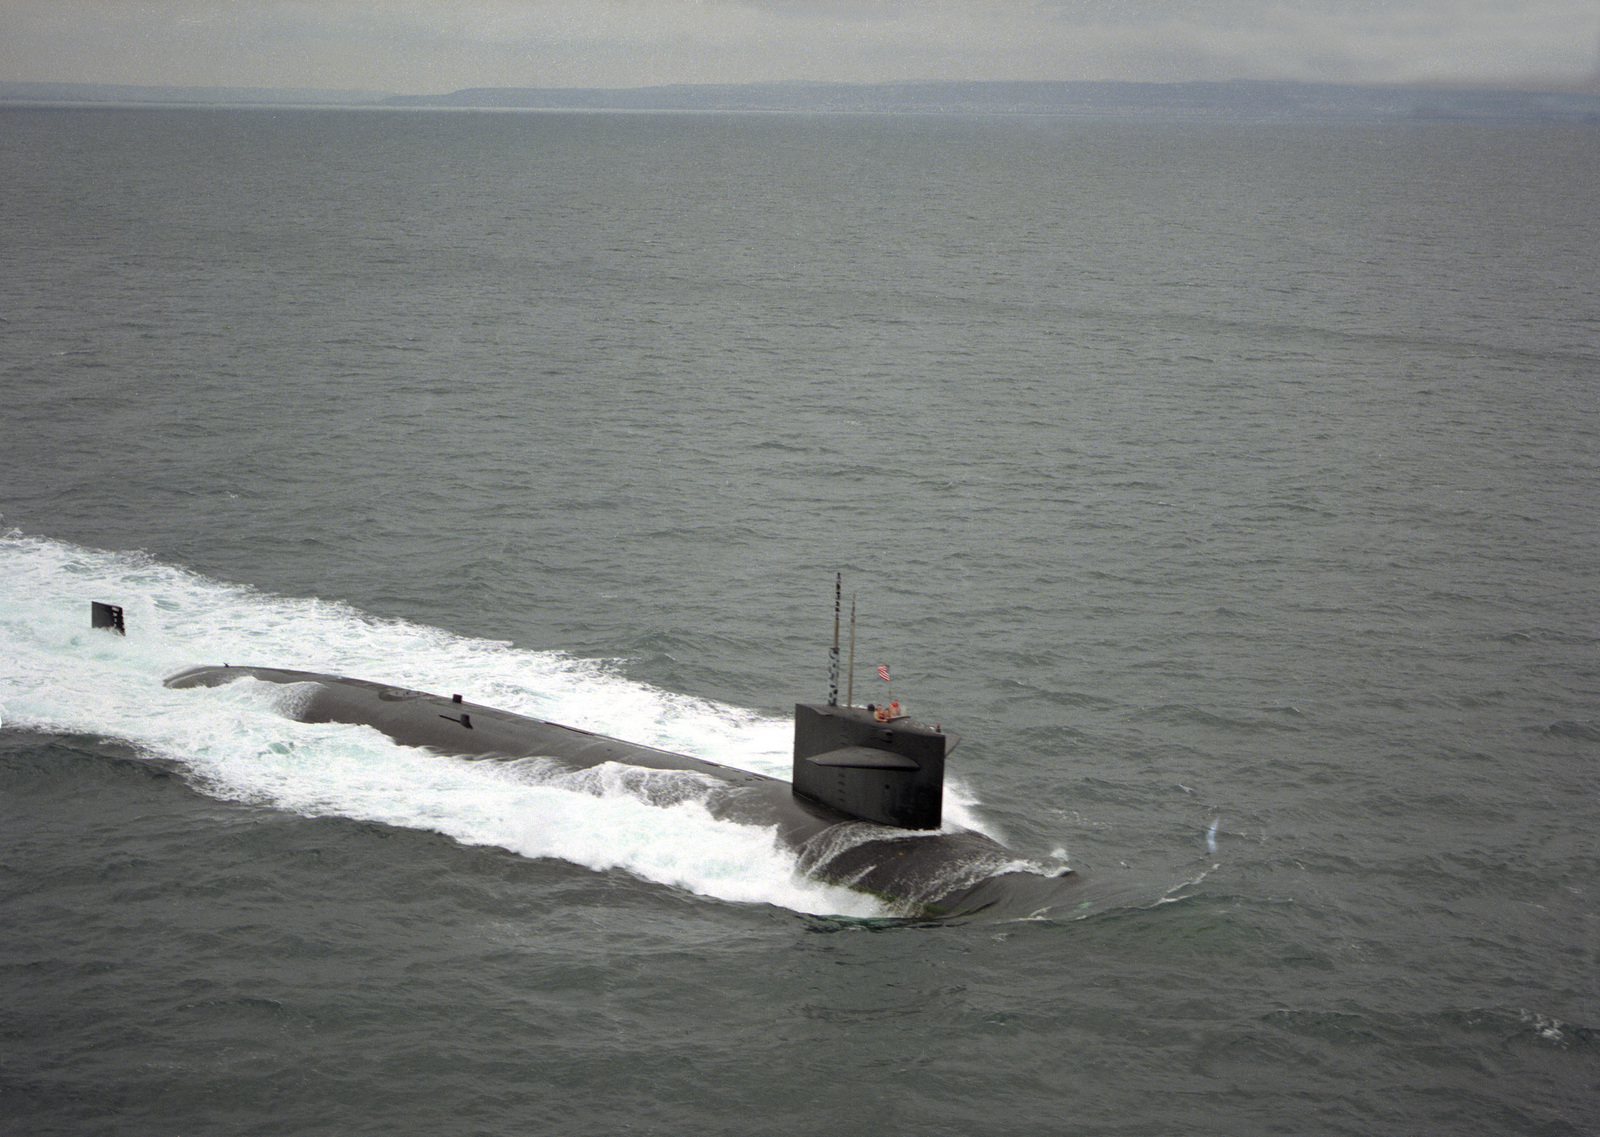 A starboard bow view of the nuclear-powered attack submarine